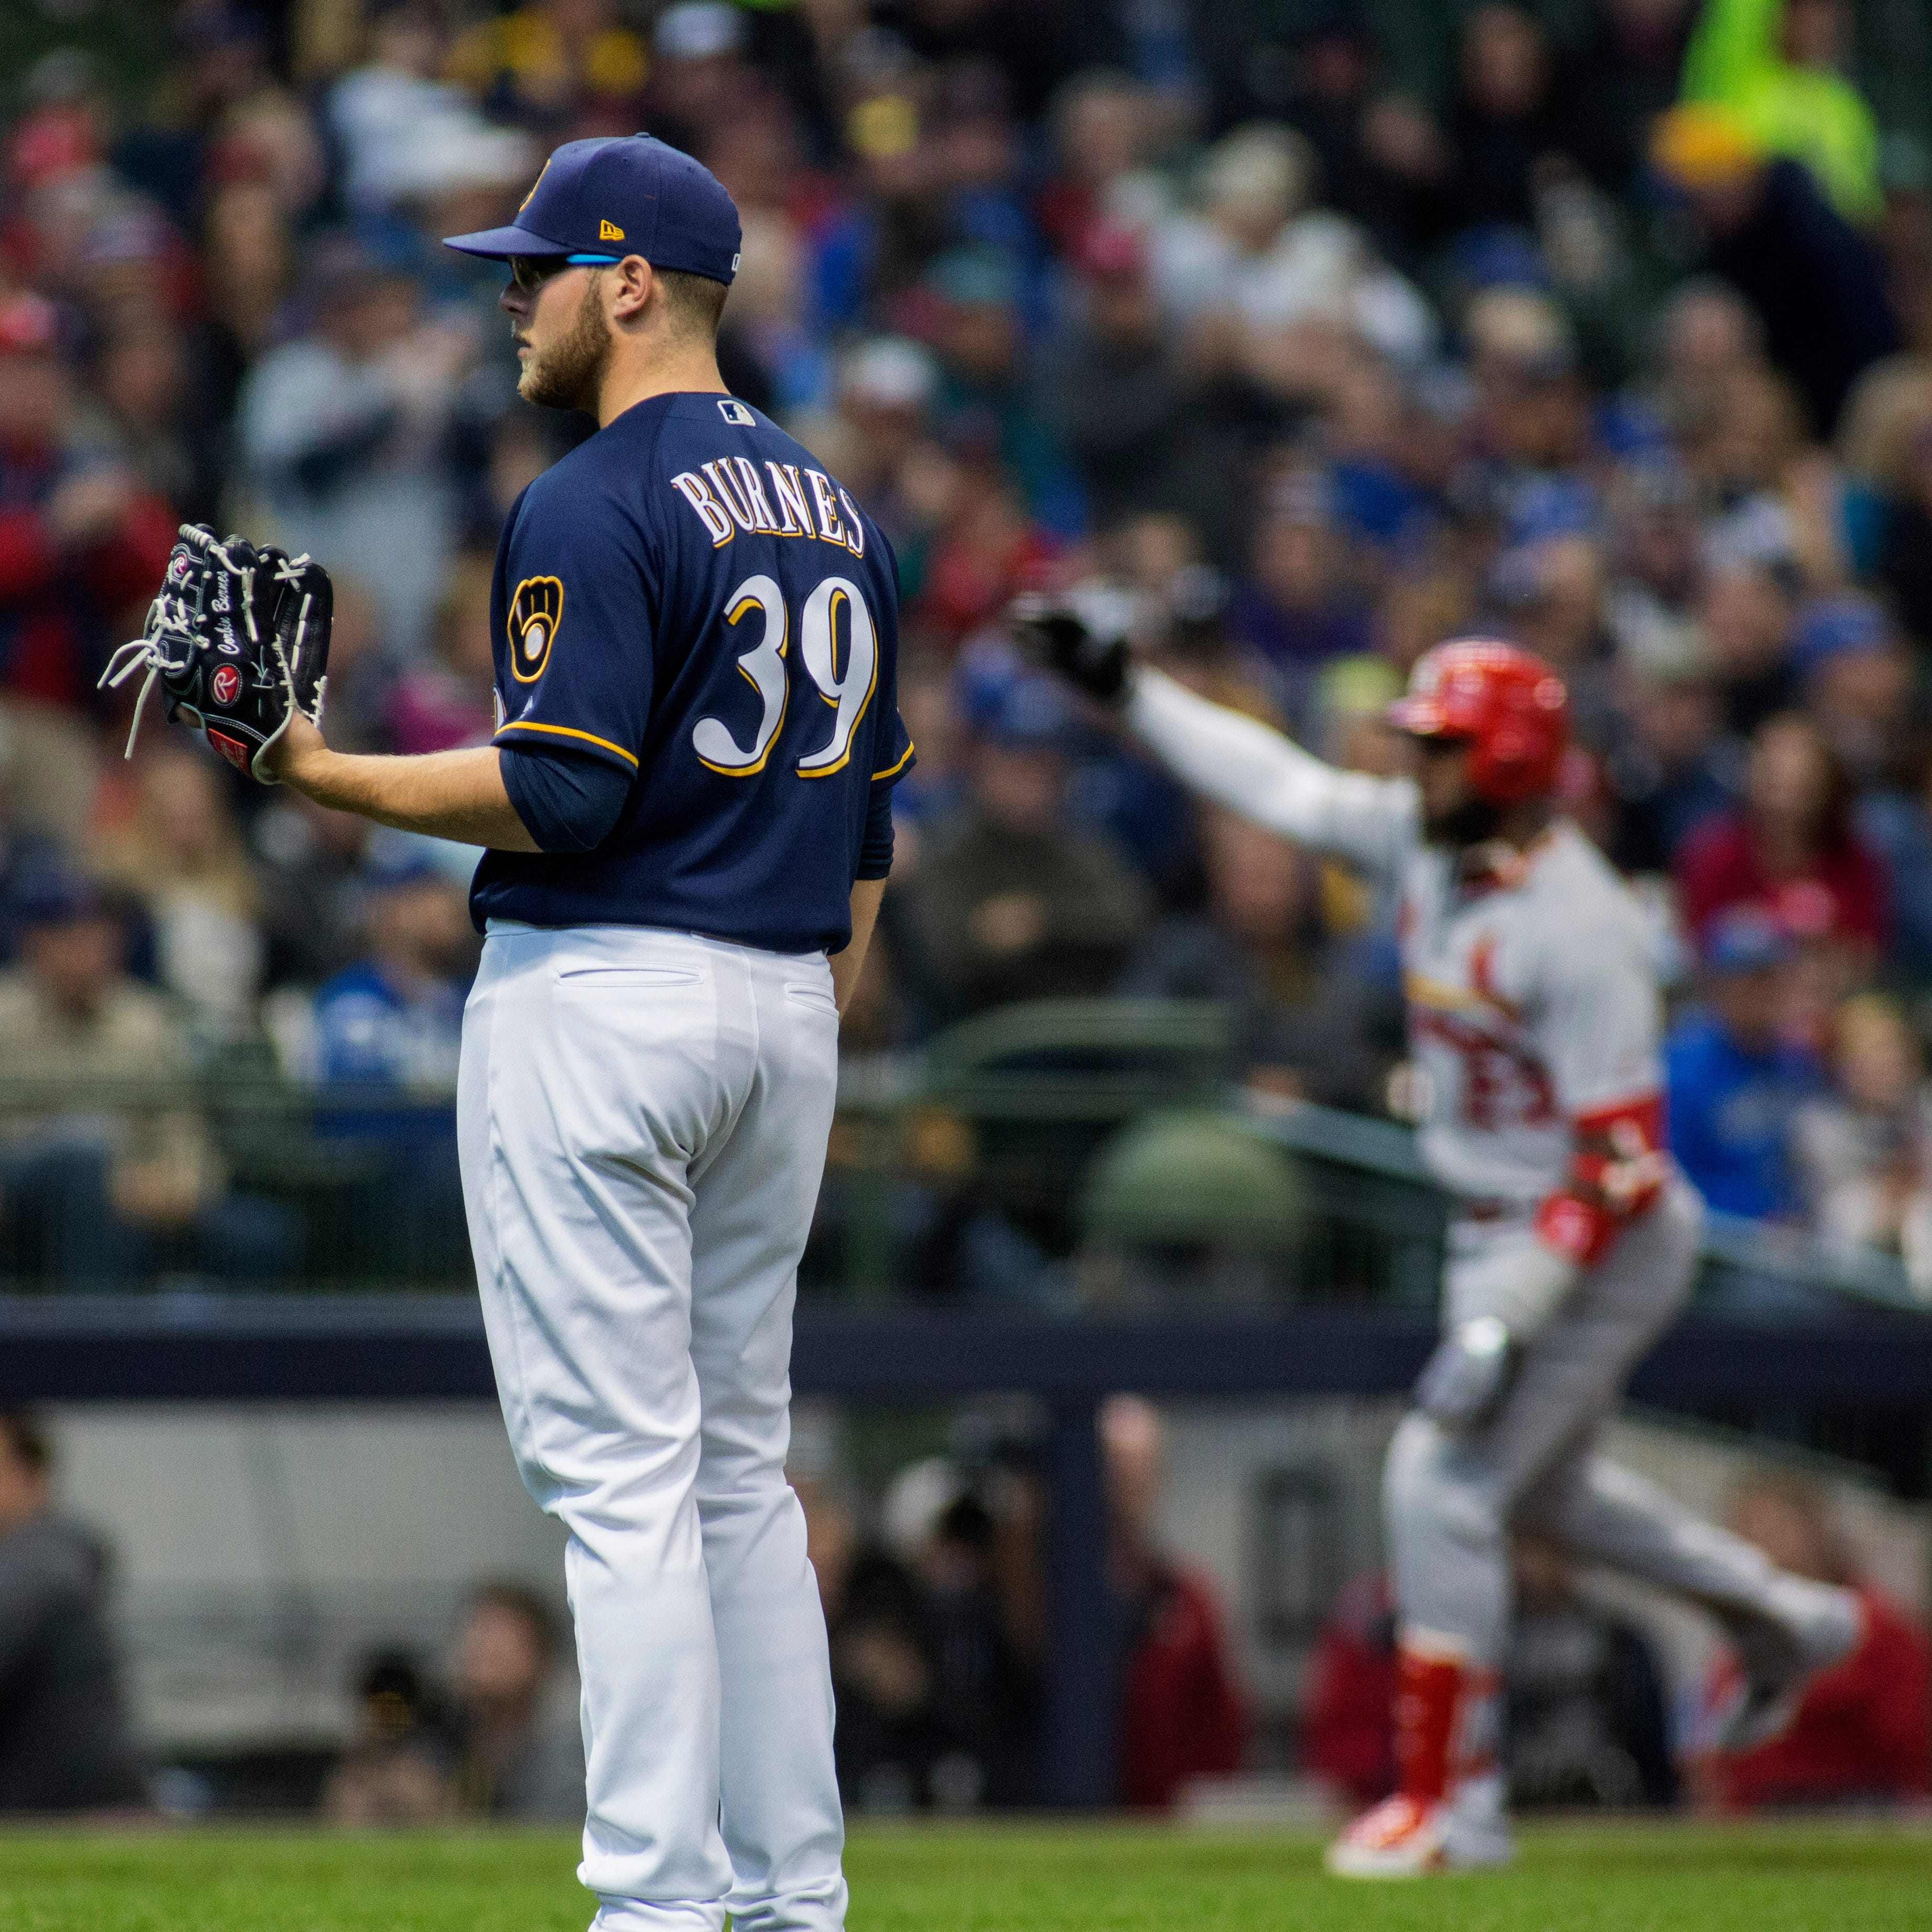 Cardinals 6, Brewers 3: A concerning trend continues as Corbin Burnes gives up two more homers